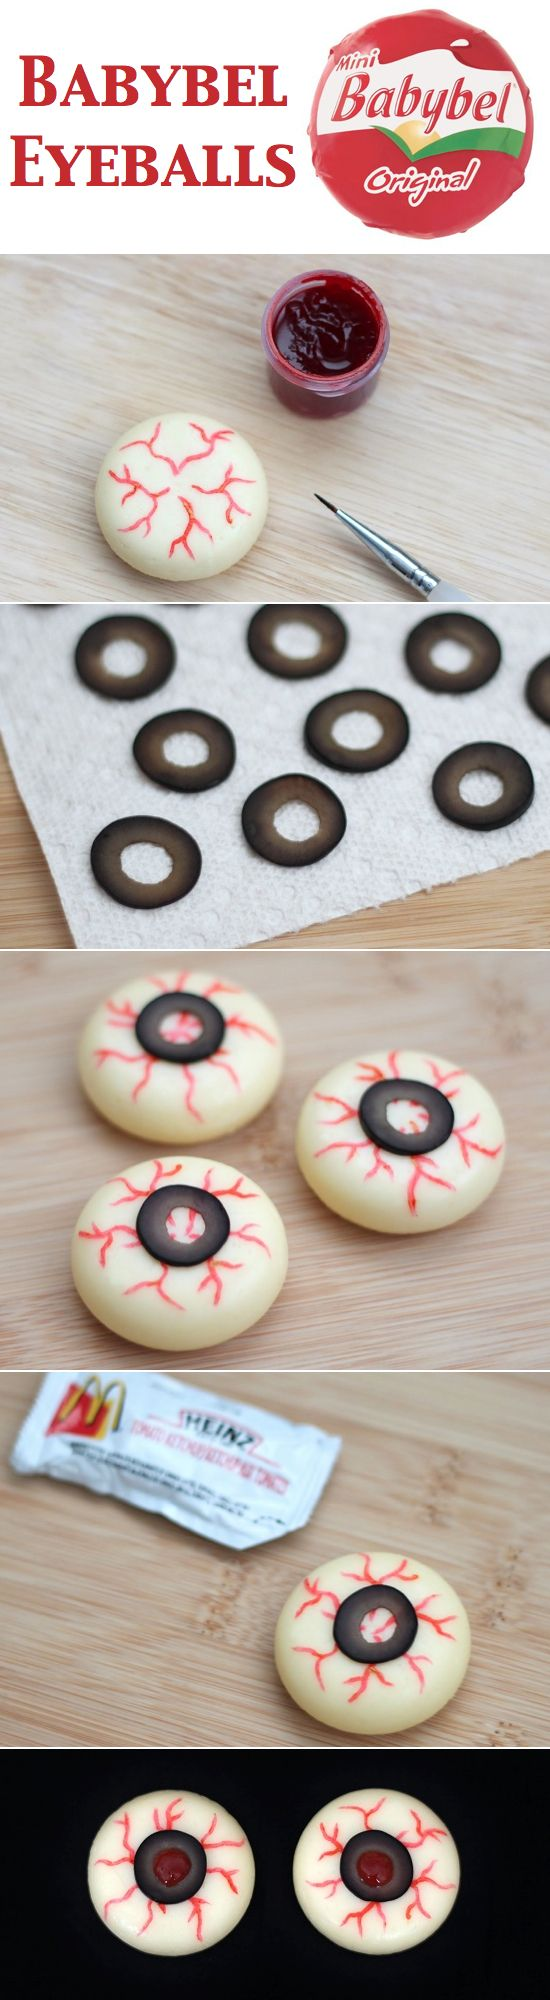 Easy Halloween Eyeball Recipe using Babybel cheese and olives.: